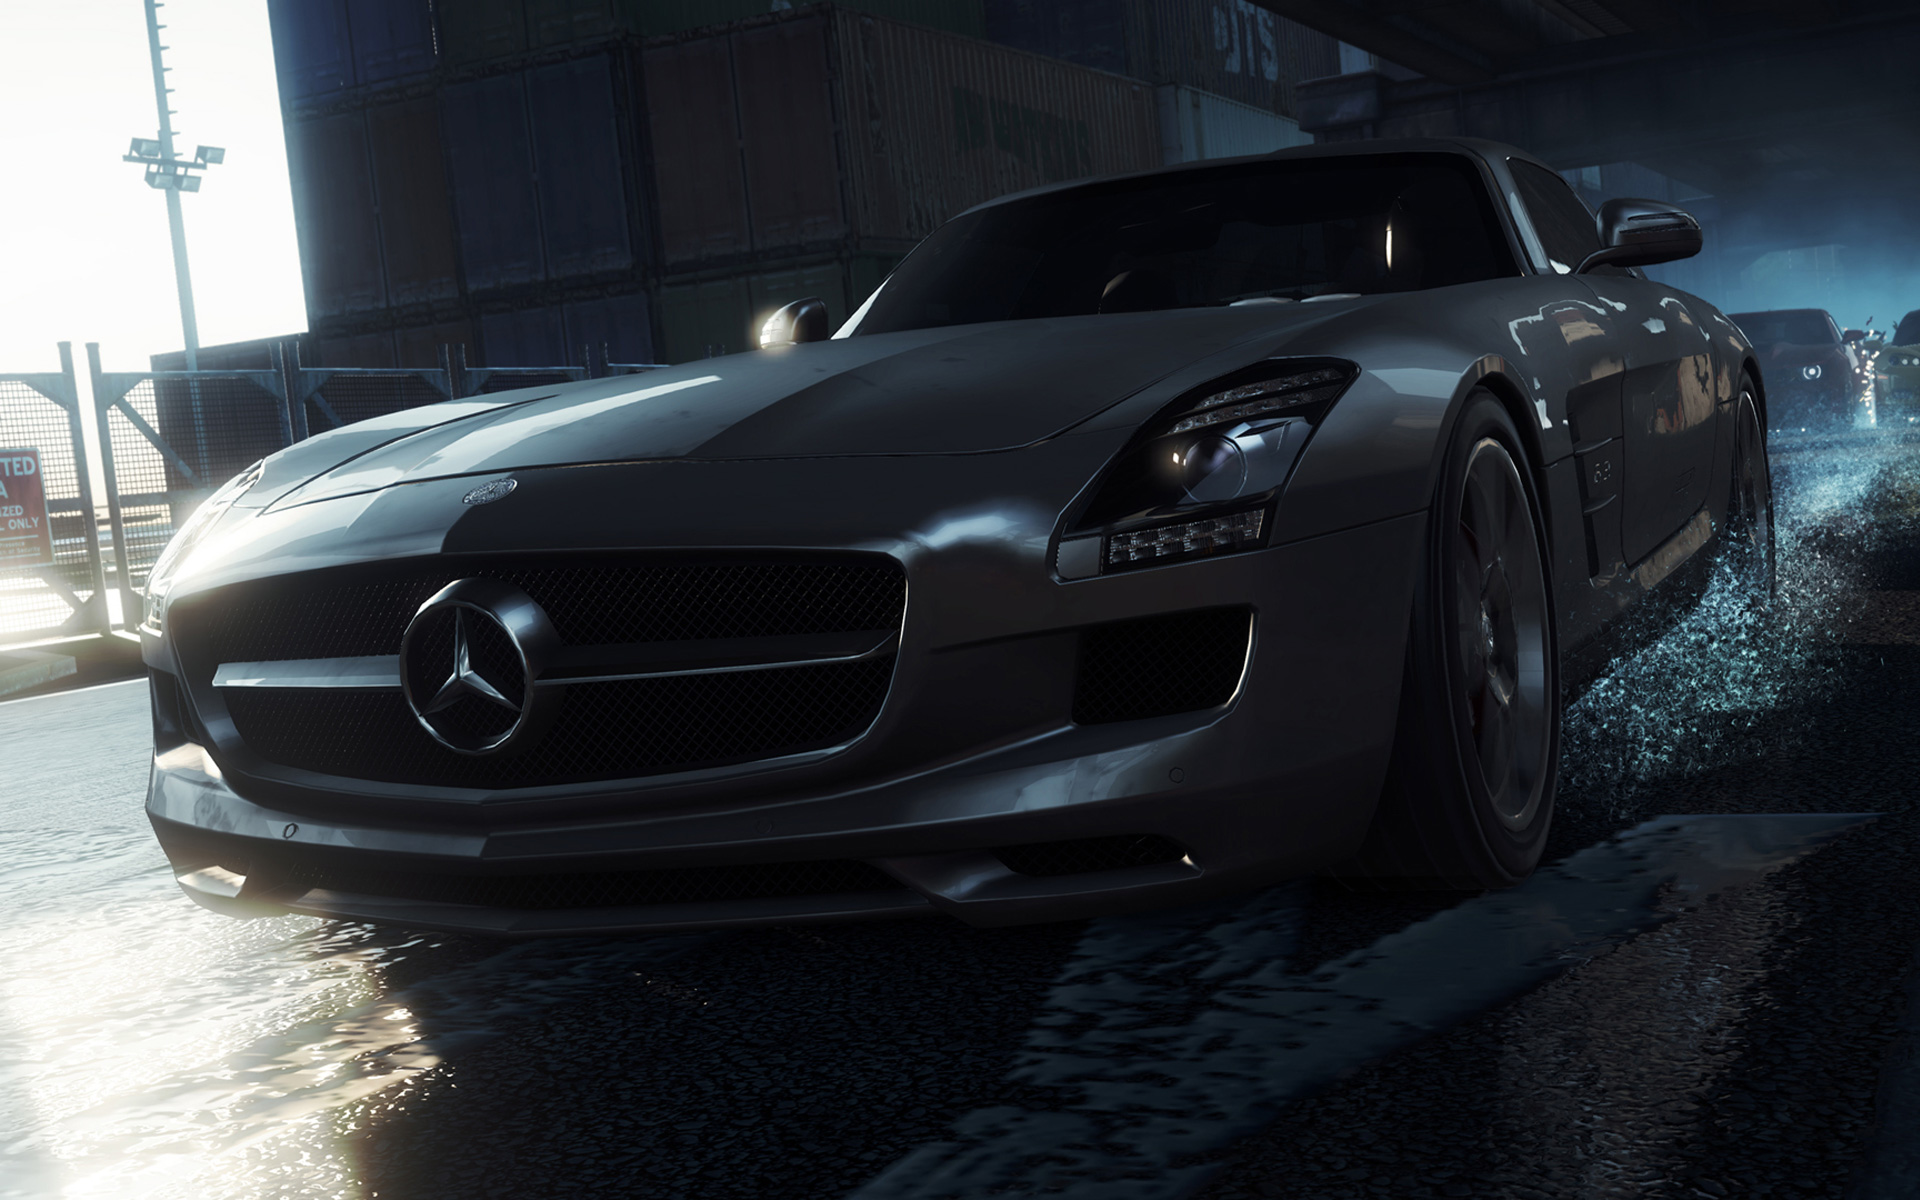 Free Need for Speed: Most Wanted (2012) Wallpaper in 1920x1200